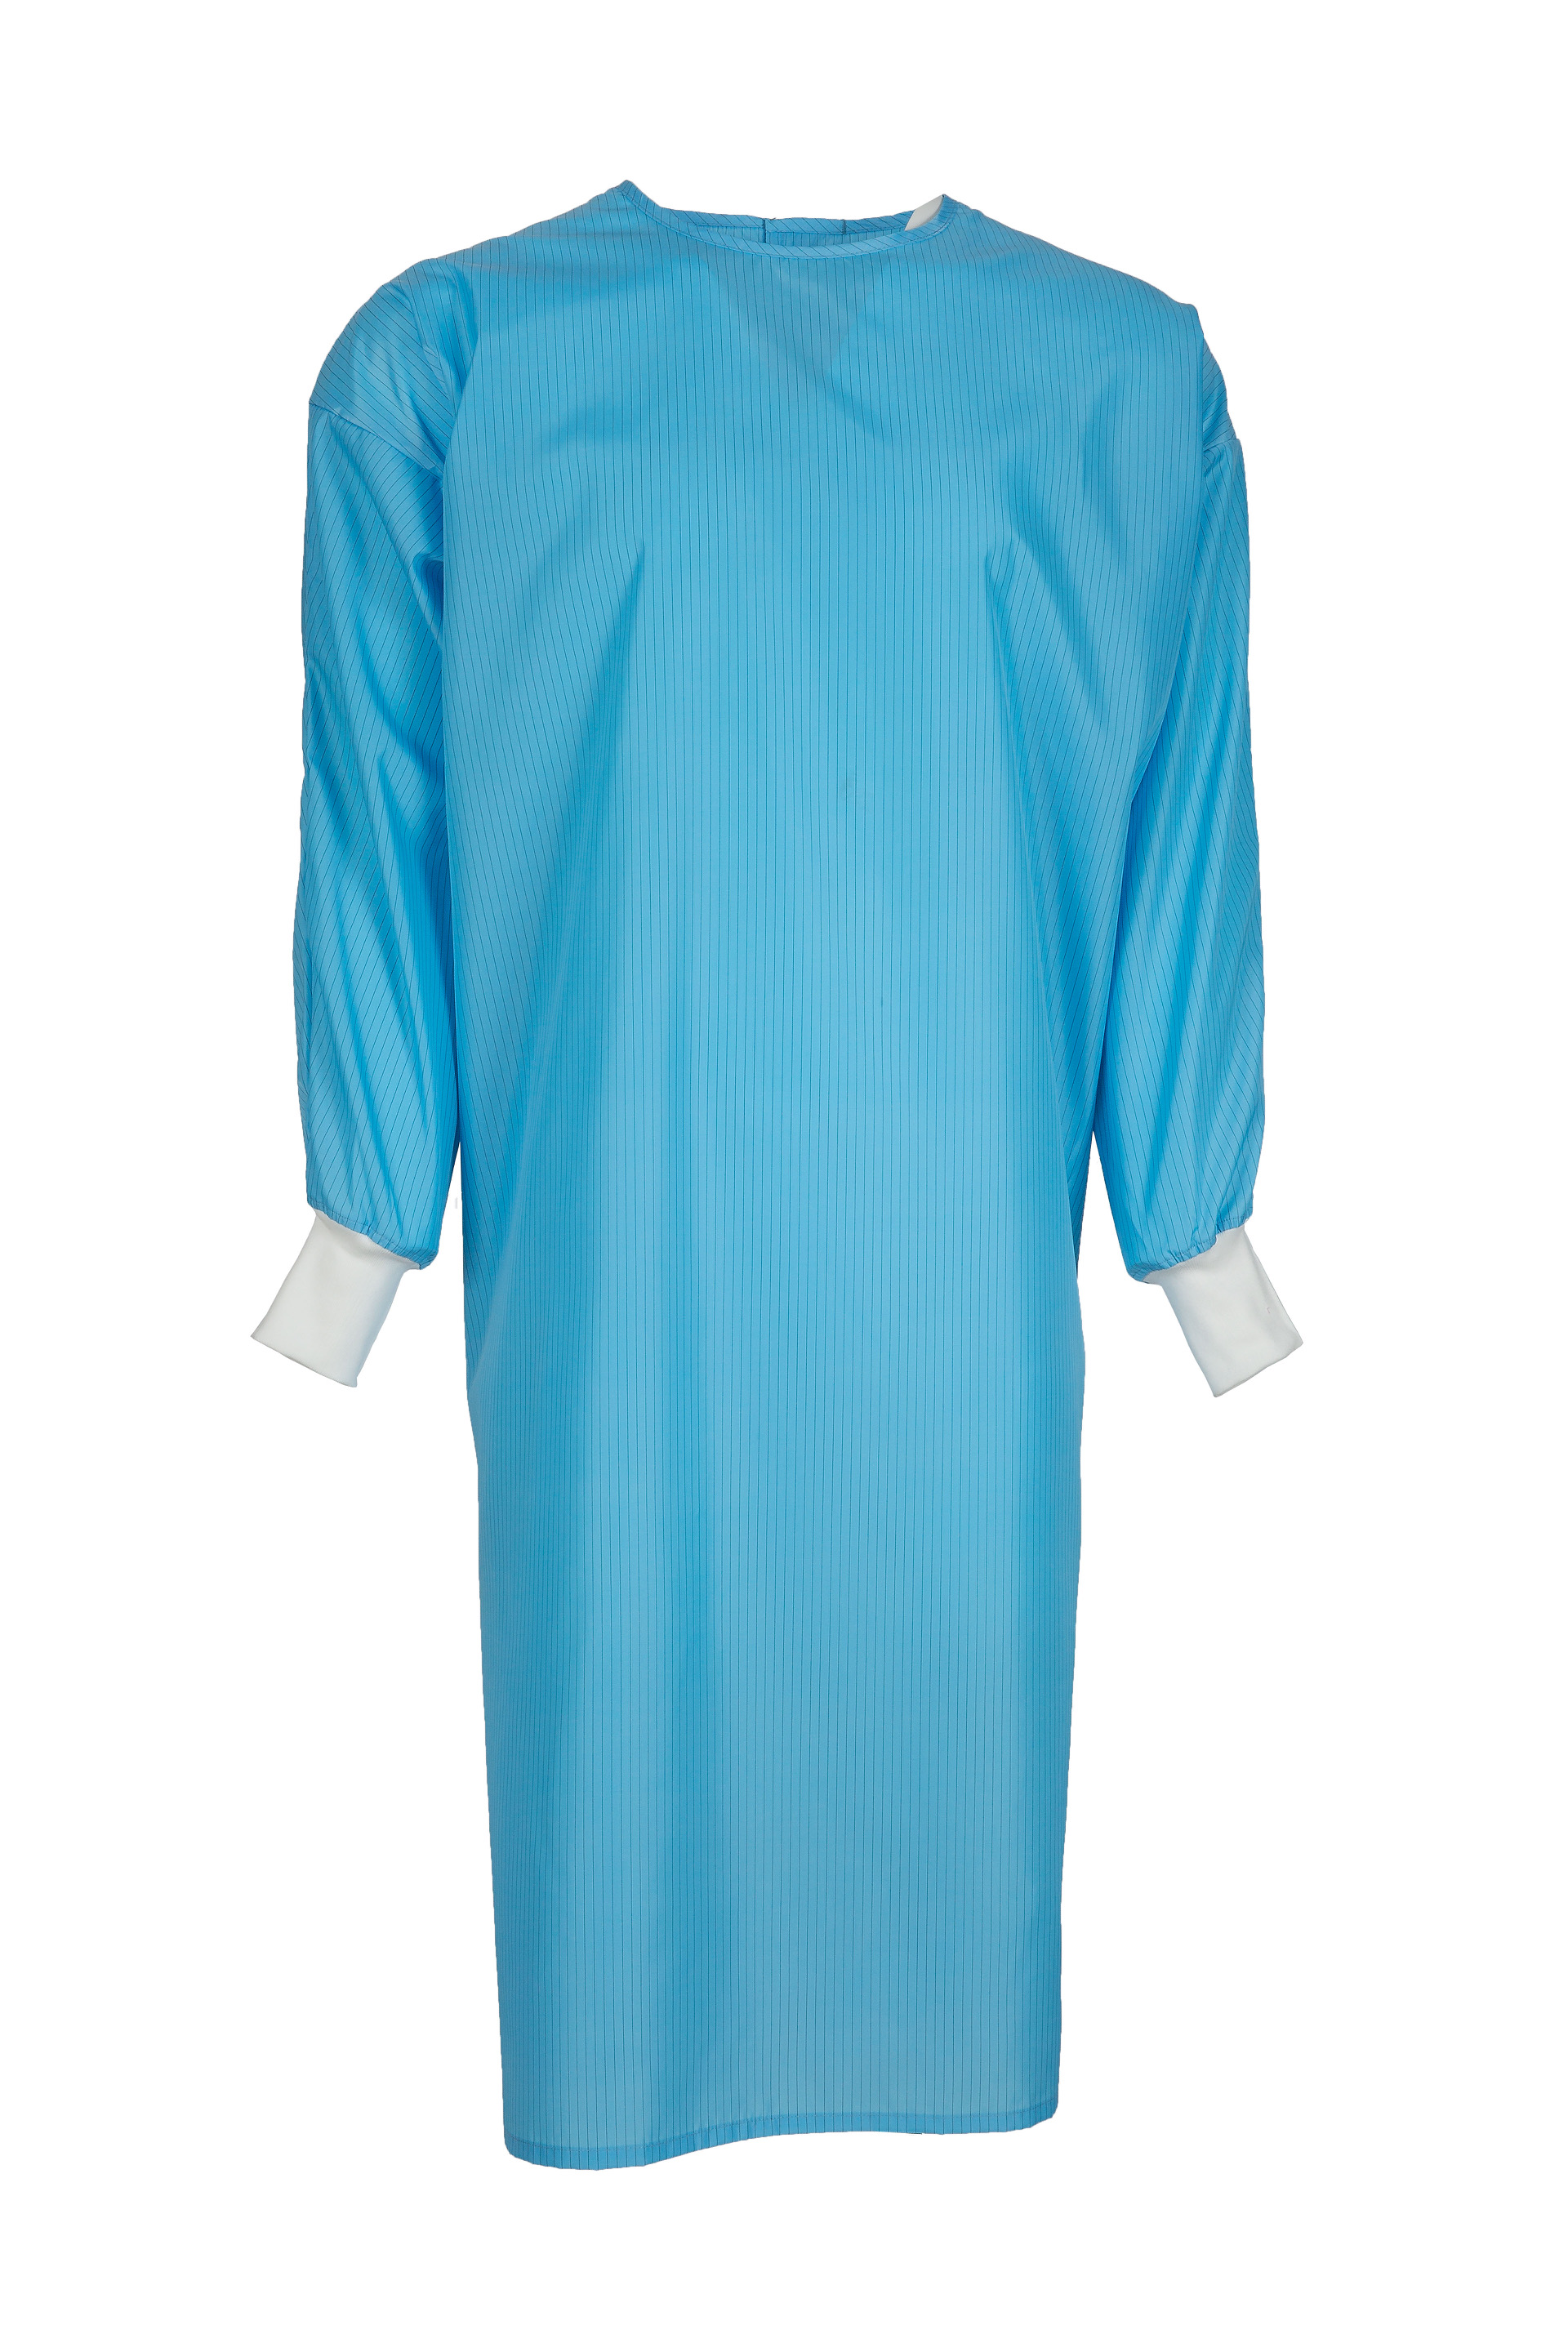 ISO4758 Level 2 Reusable Isolation Gowns - Blue